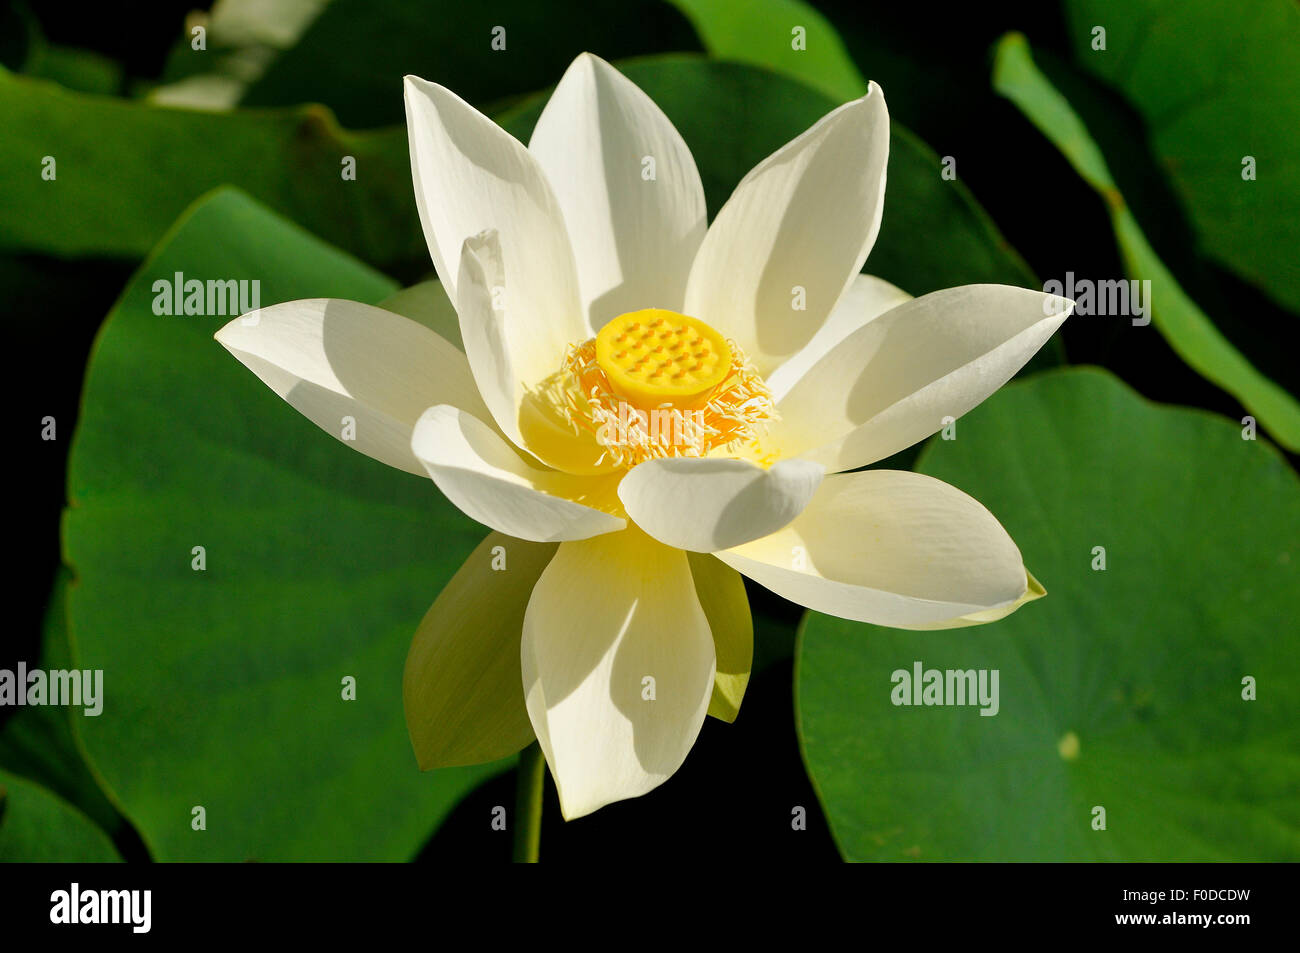 Lotus Flower High Resolution Stock Photography And Images Alamy